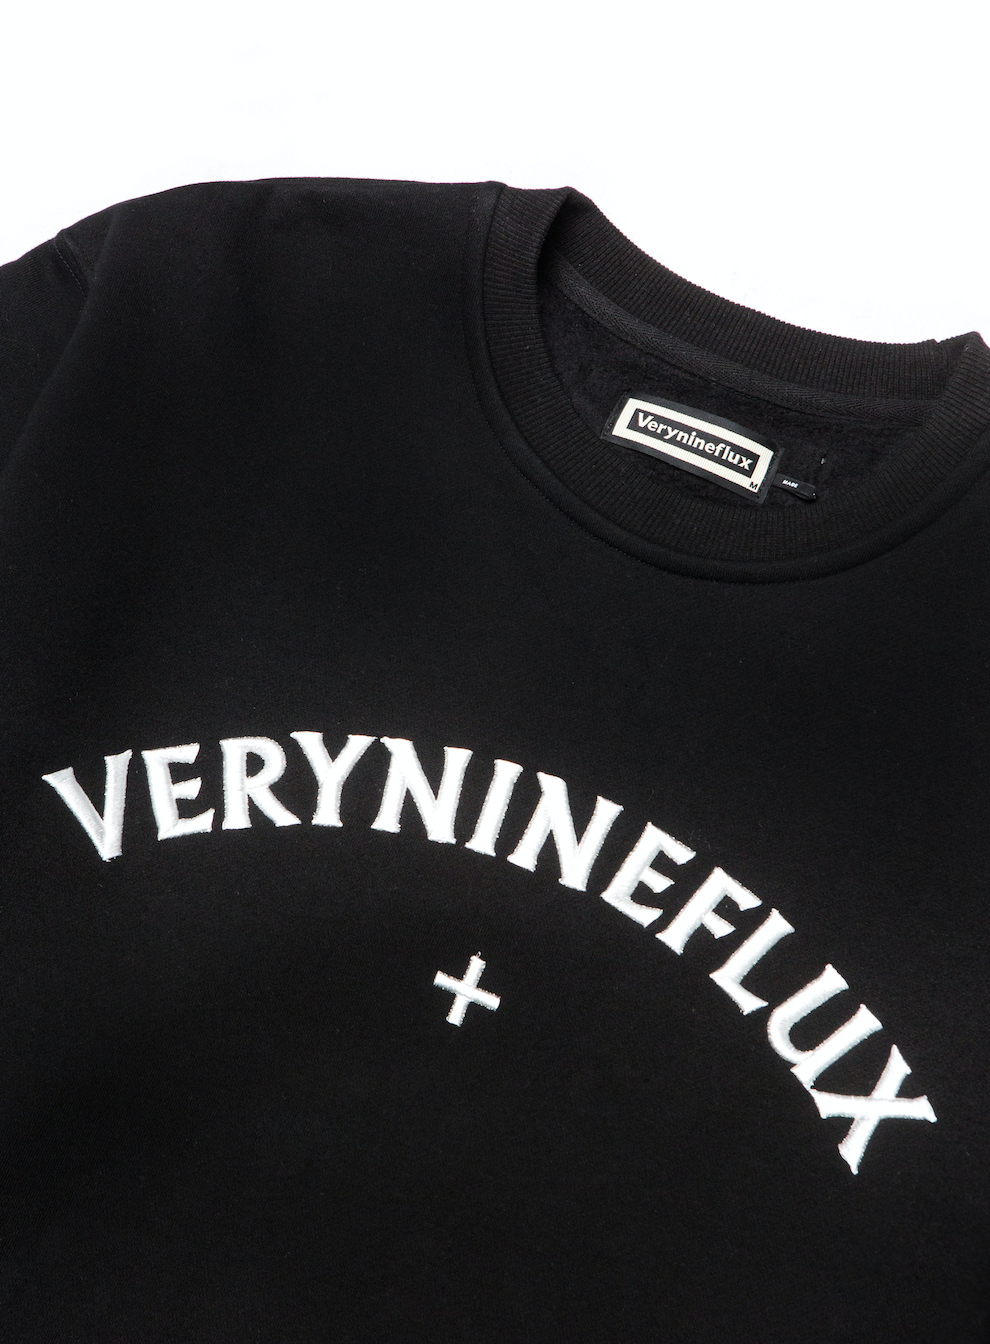 Sunset Crewneck - Black